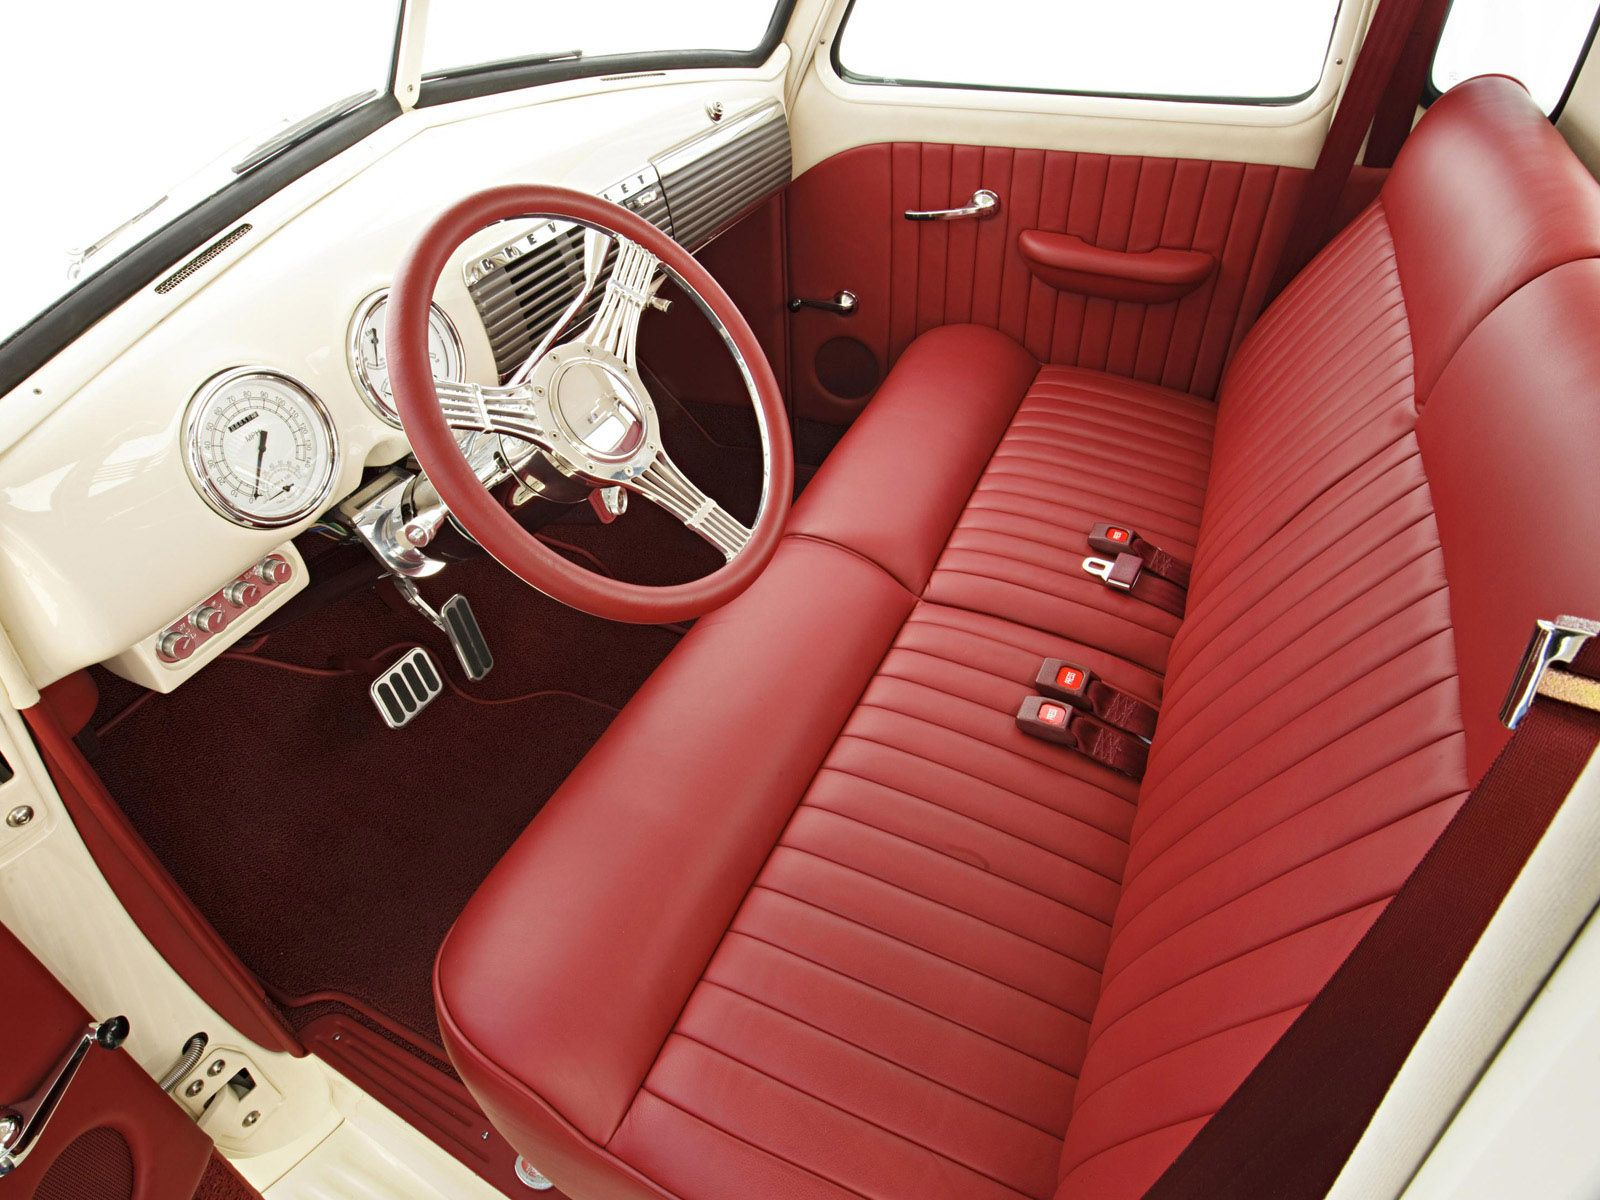 39 49 chevy pickup love this red interior adrenaline capsules pinterest chevy pickups red. Black Bedroom Furniture Sets. Home Design Ideas